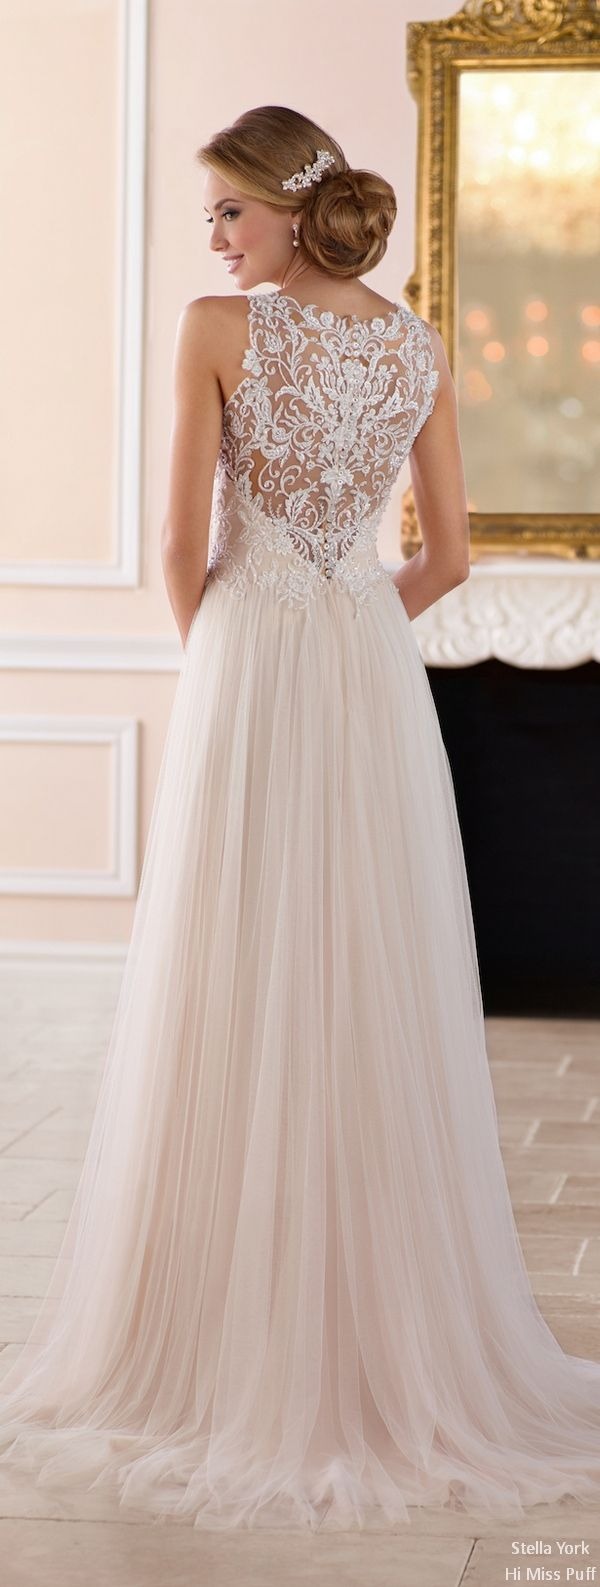 386631bc614b711362f86a9b85926773--elegant-wedding-dresses--wedding-dresses